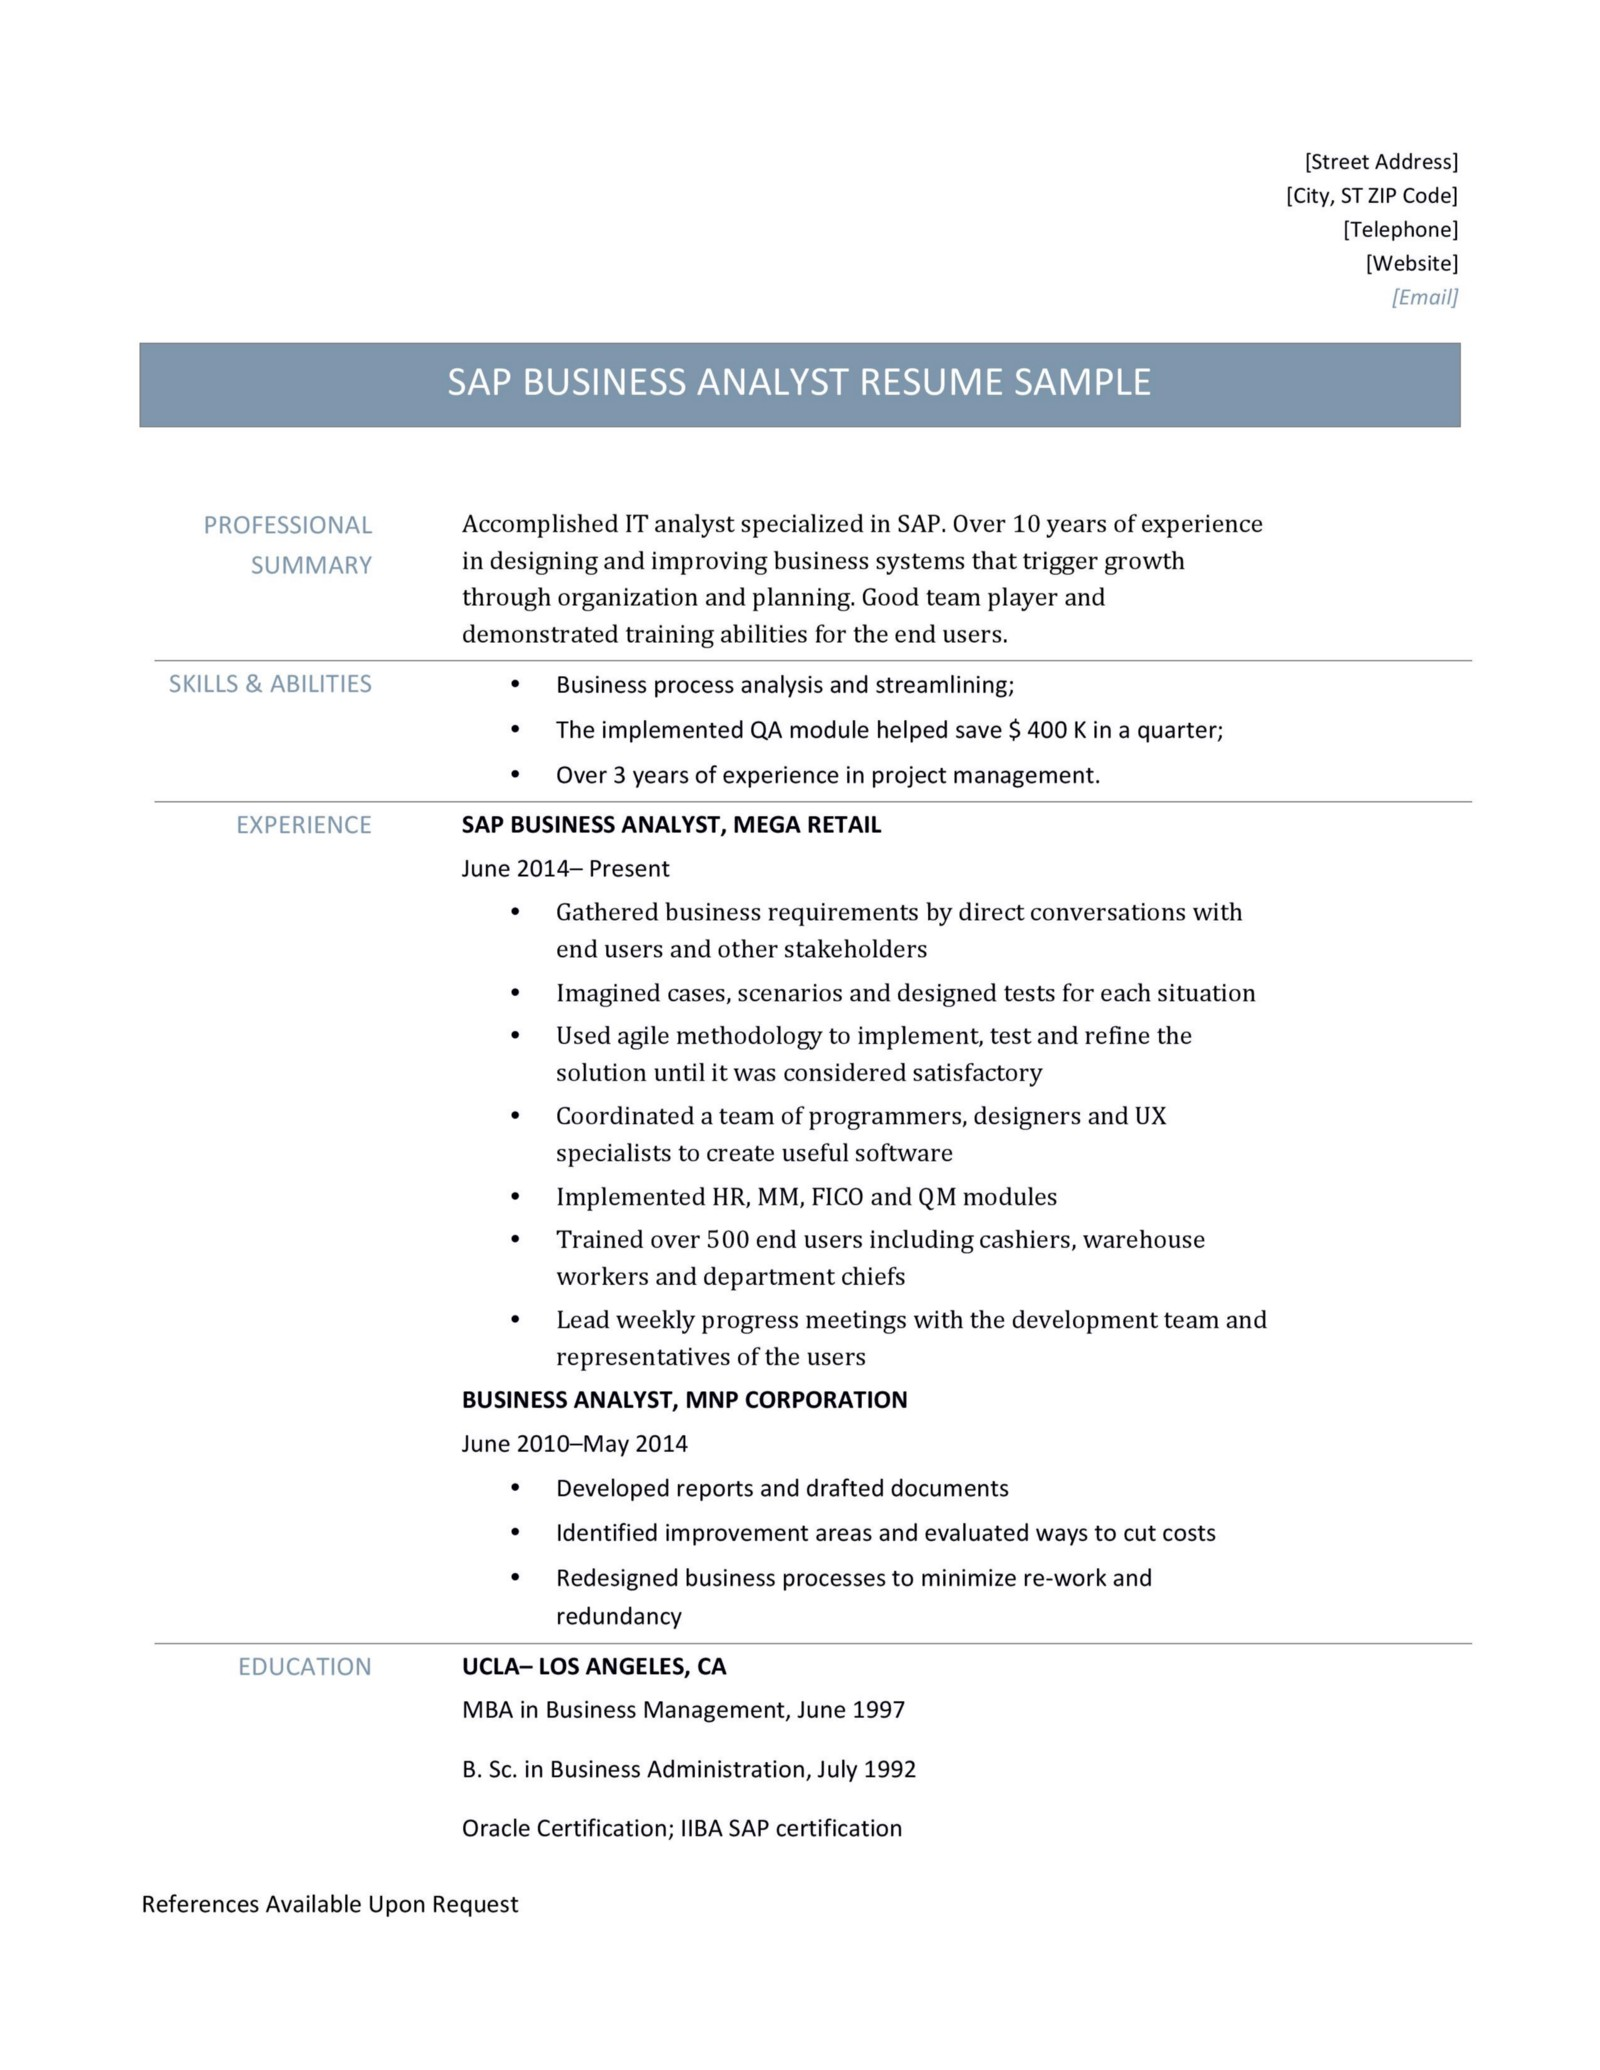 SAP Analyst Resume Templates And Samples Online Builders